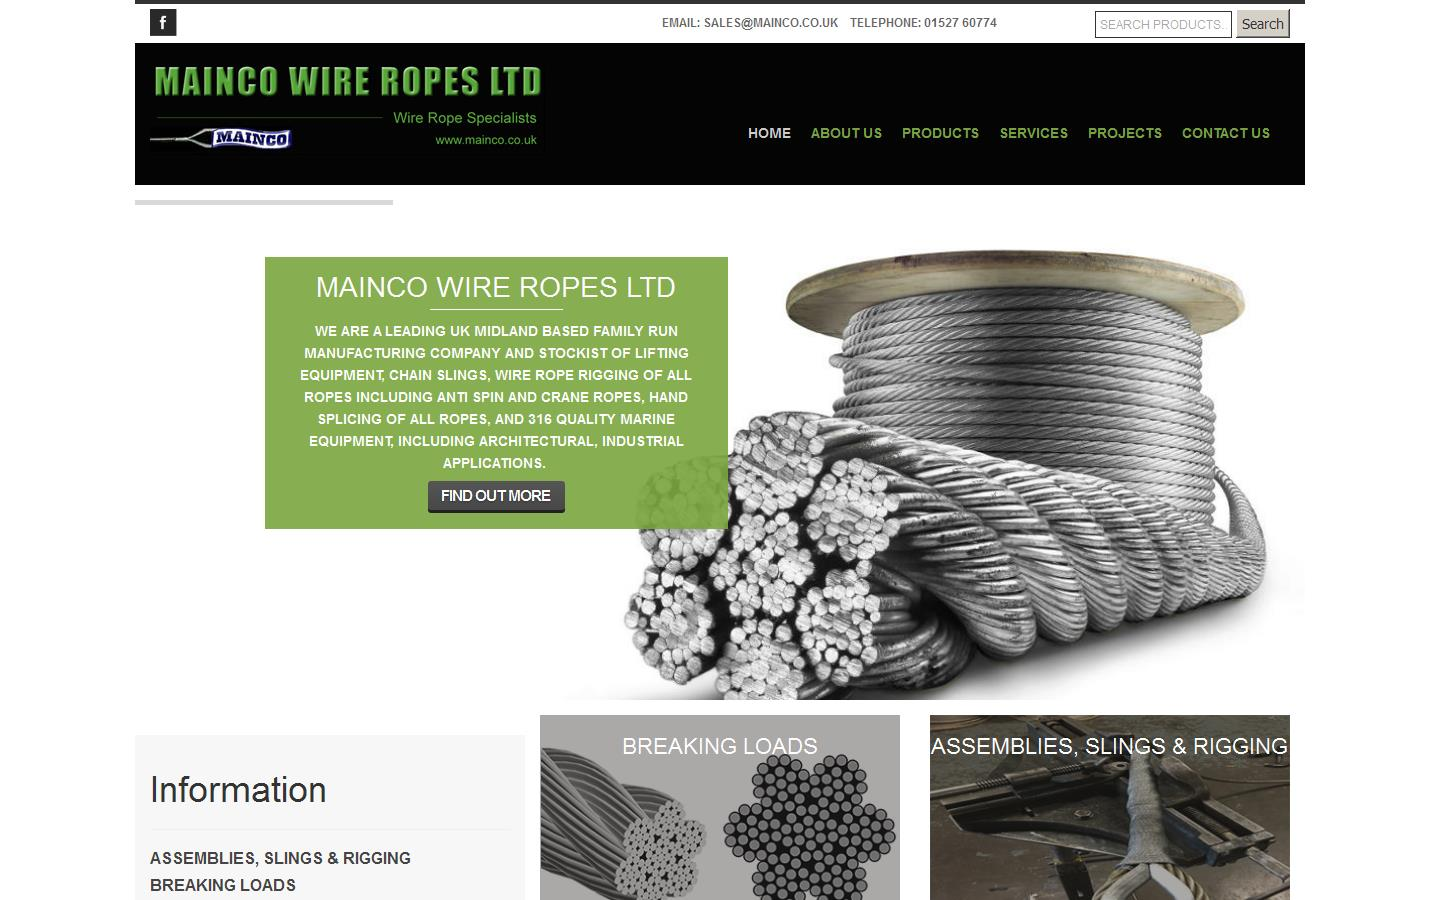 Mainco Wire Ropes Ltd, Redditch, Worcestershire, B98 9NB